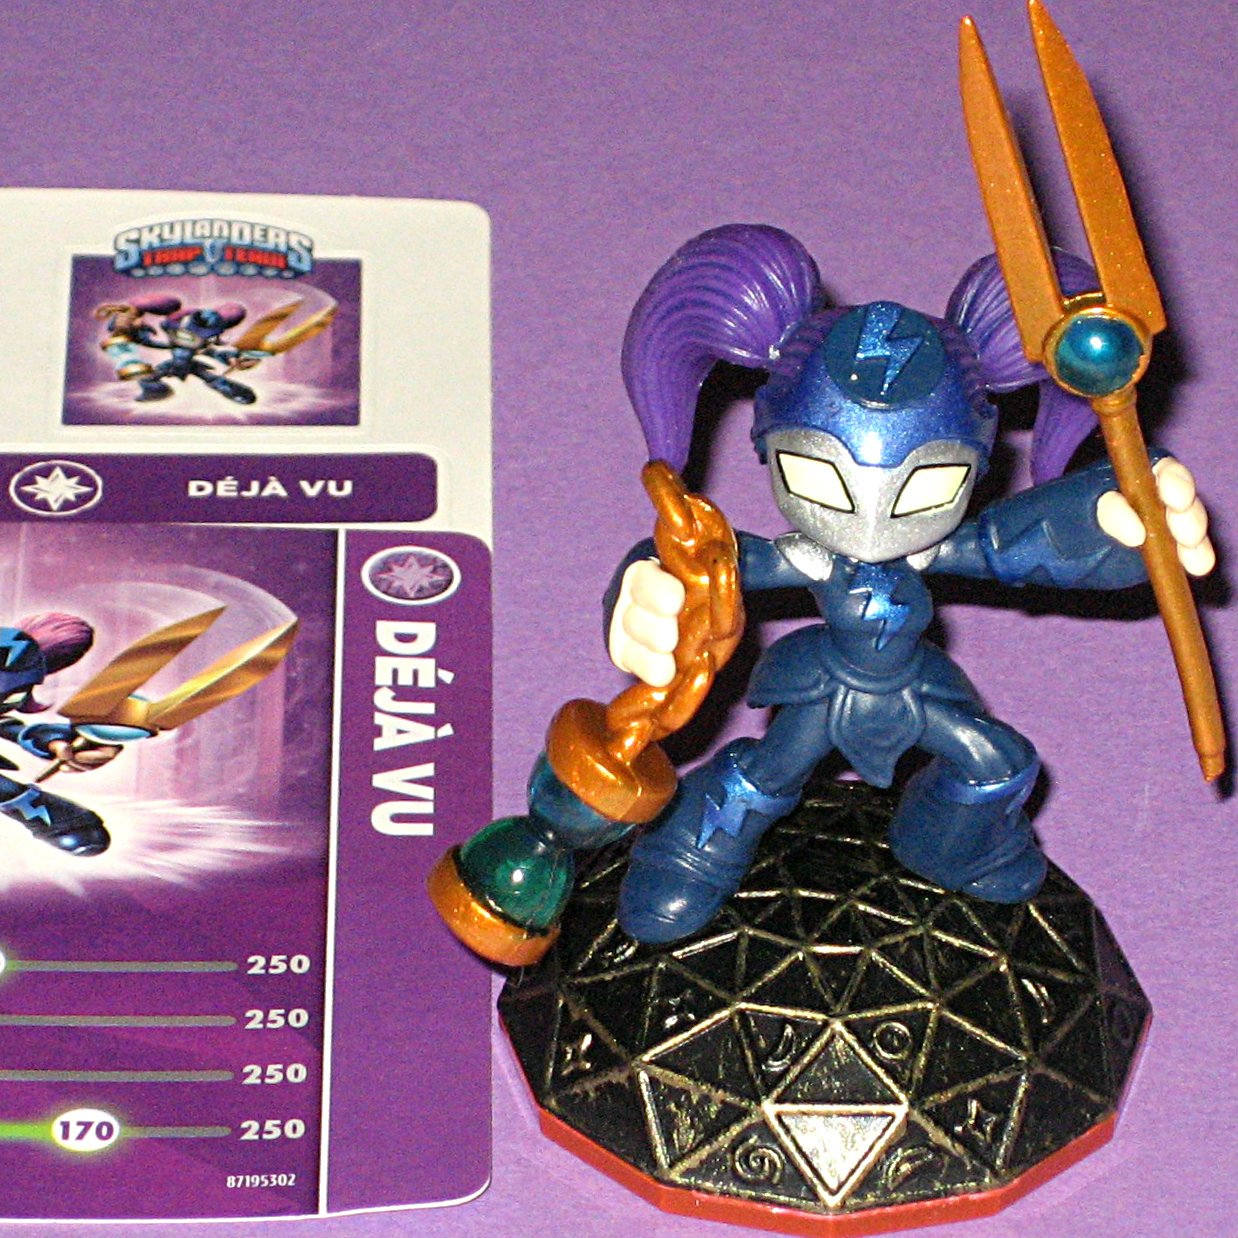 Deja Vu Skylanders Trap Outlet sale feature Team includes Rare code and card Character